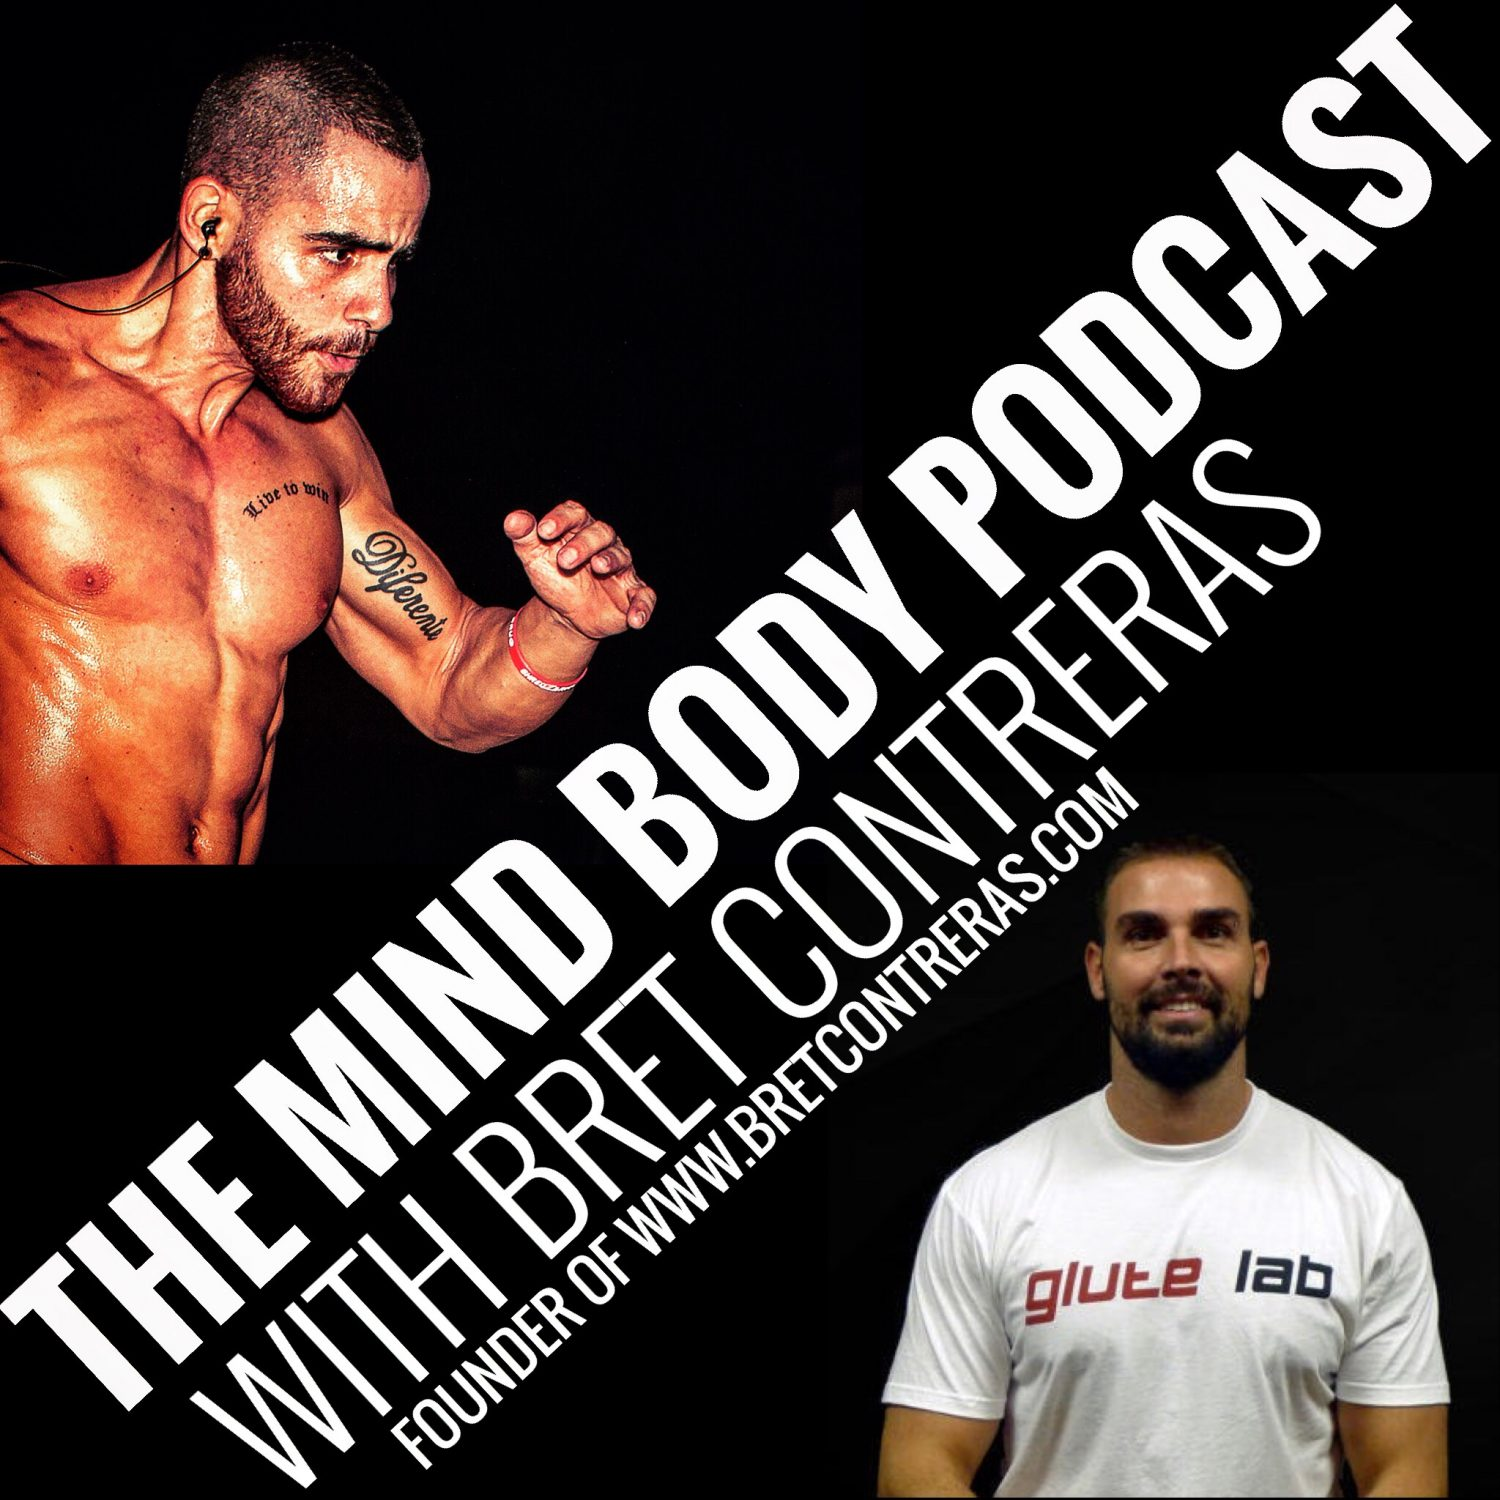 Interview With Bret Contreras On How To Achieve A Strong